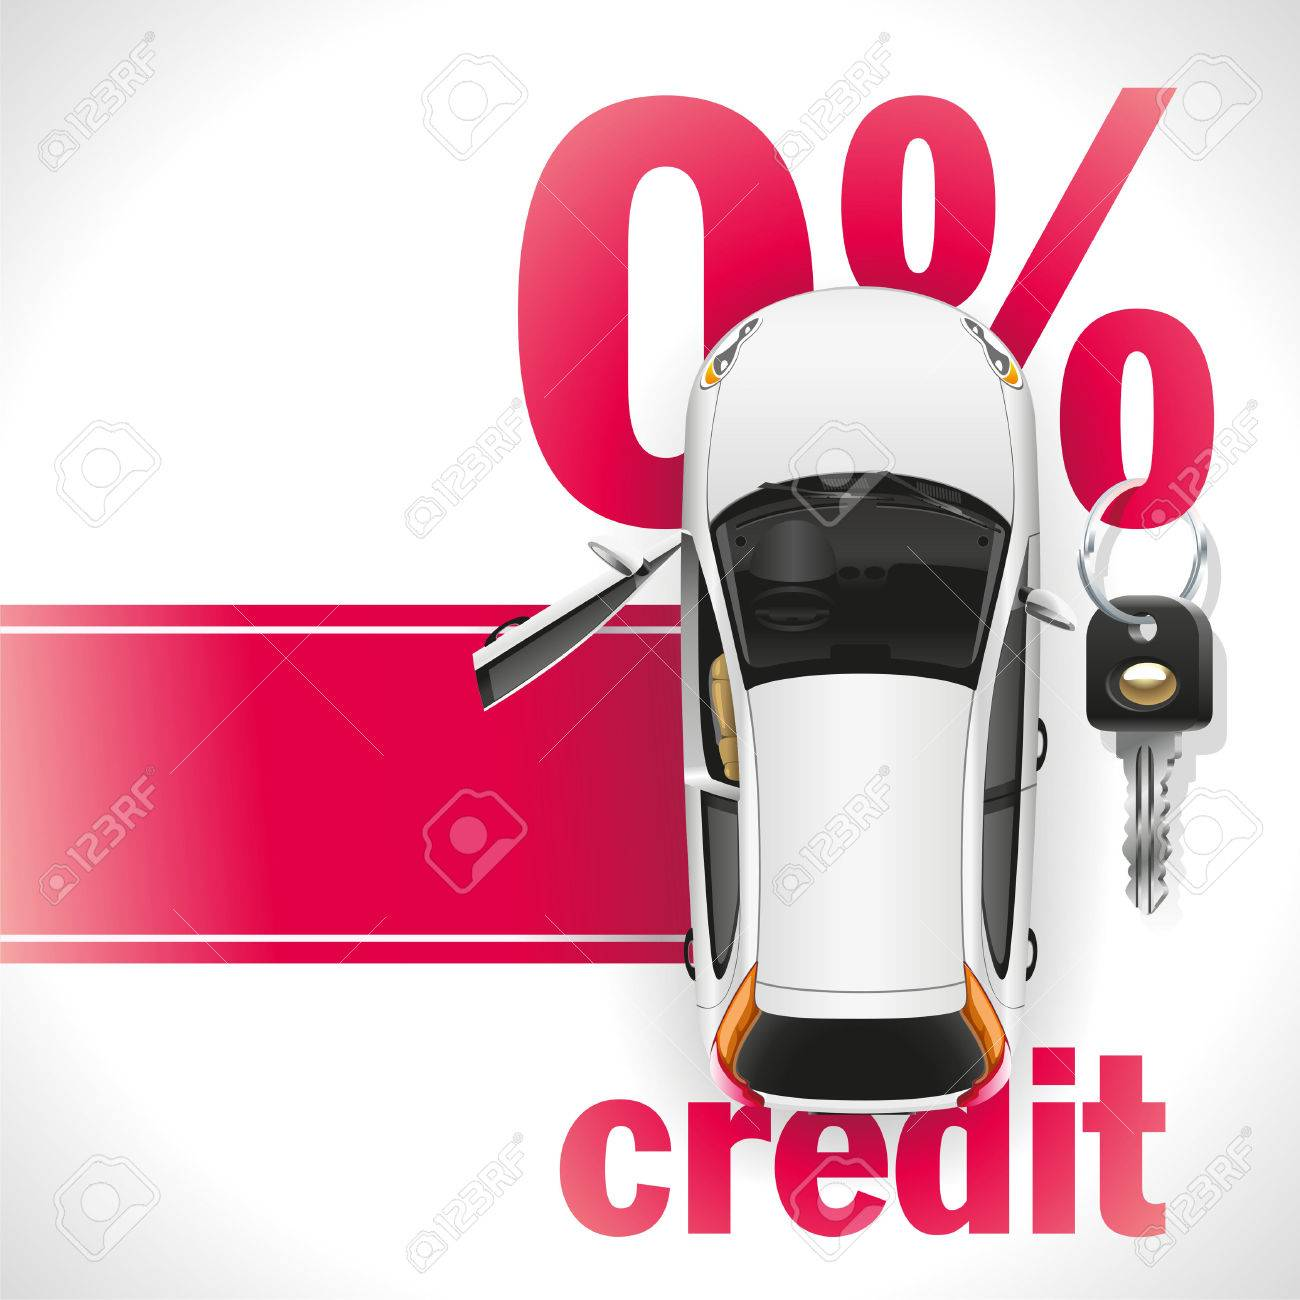 open front door clipart. new white car with open front door standing on the red carpet. against background clipart